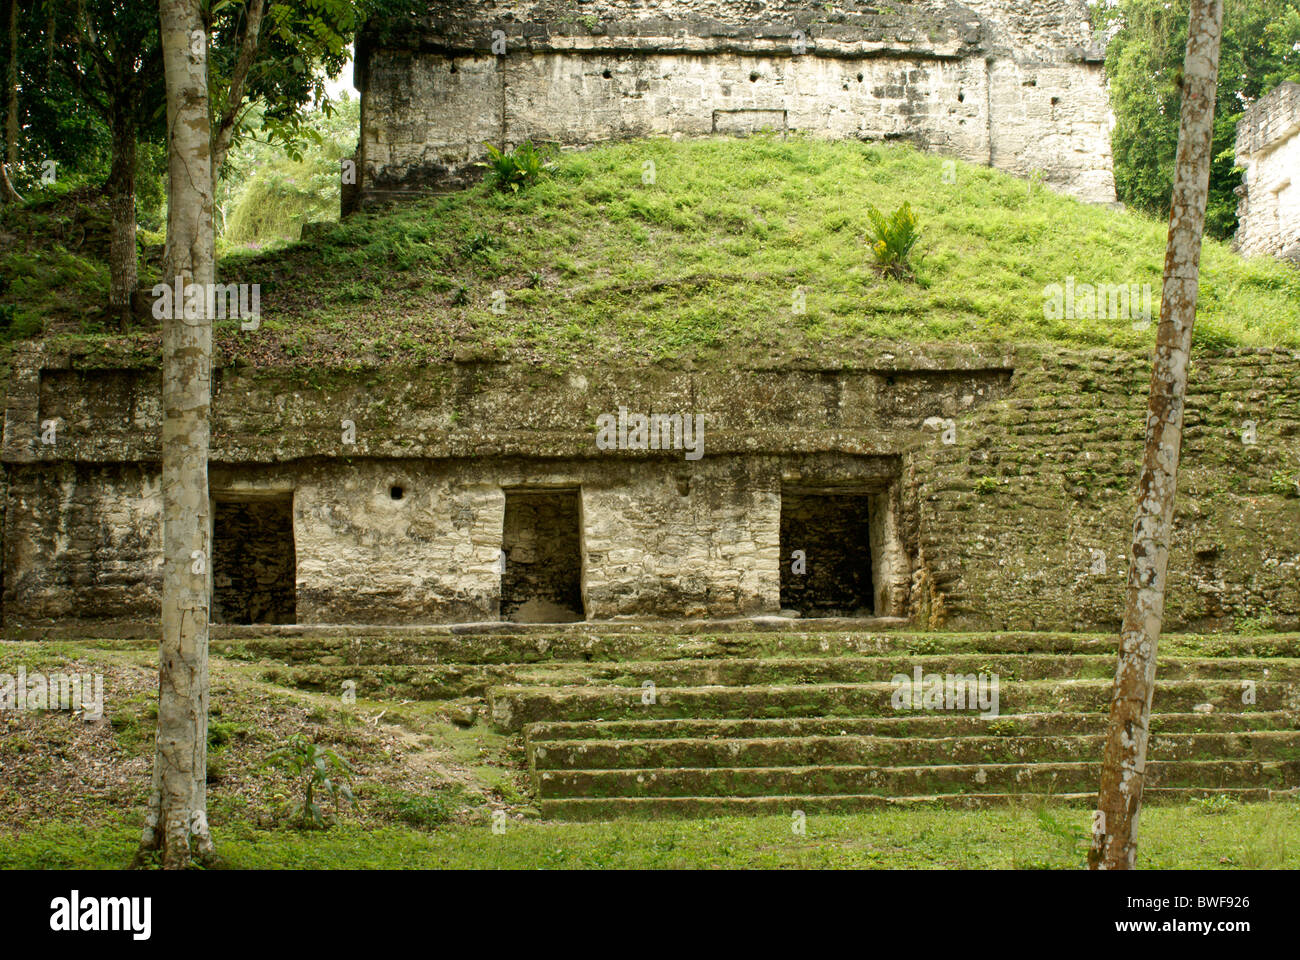 Building in the Seven Temples complex, Maya ruins of Tikal, El Peten, Guatemala. Tikal is a UNESCO World Heritage - Stock Image